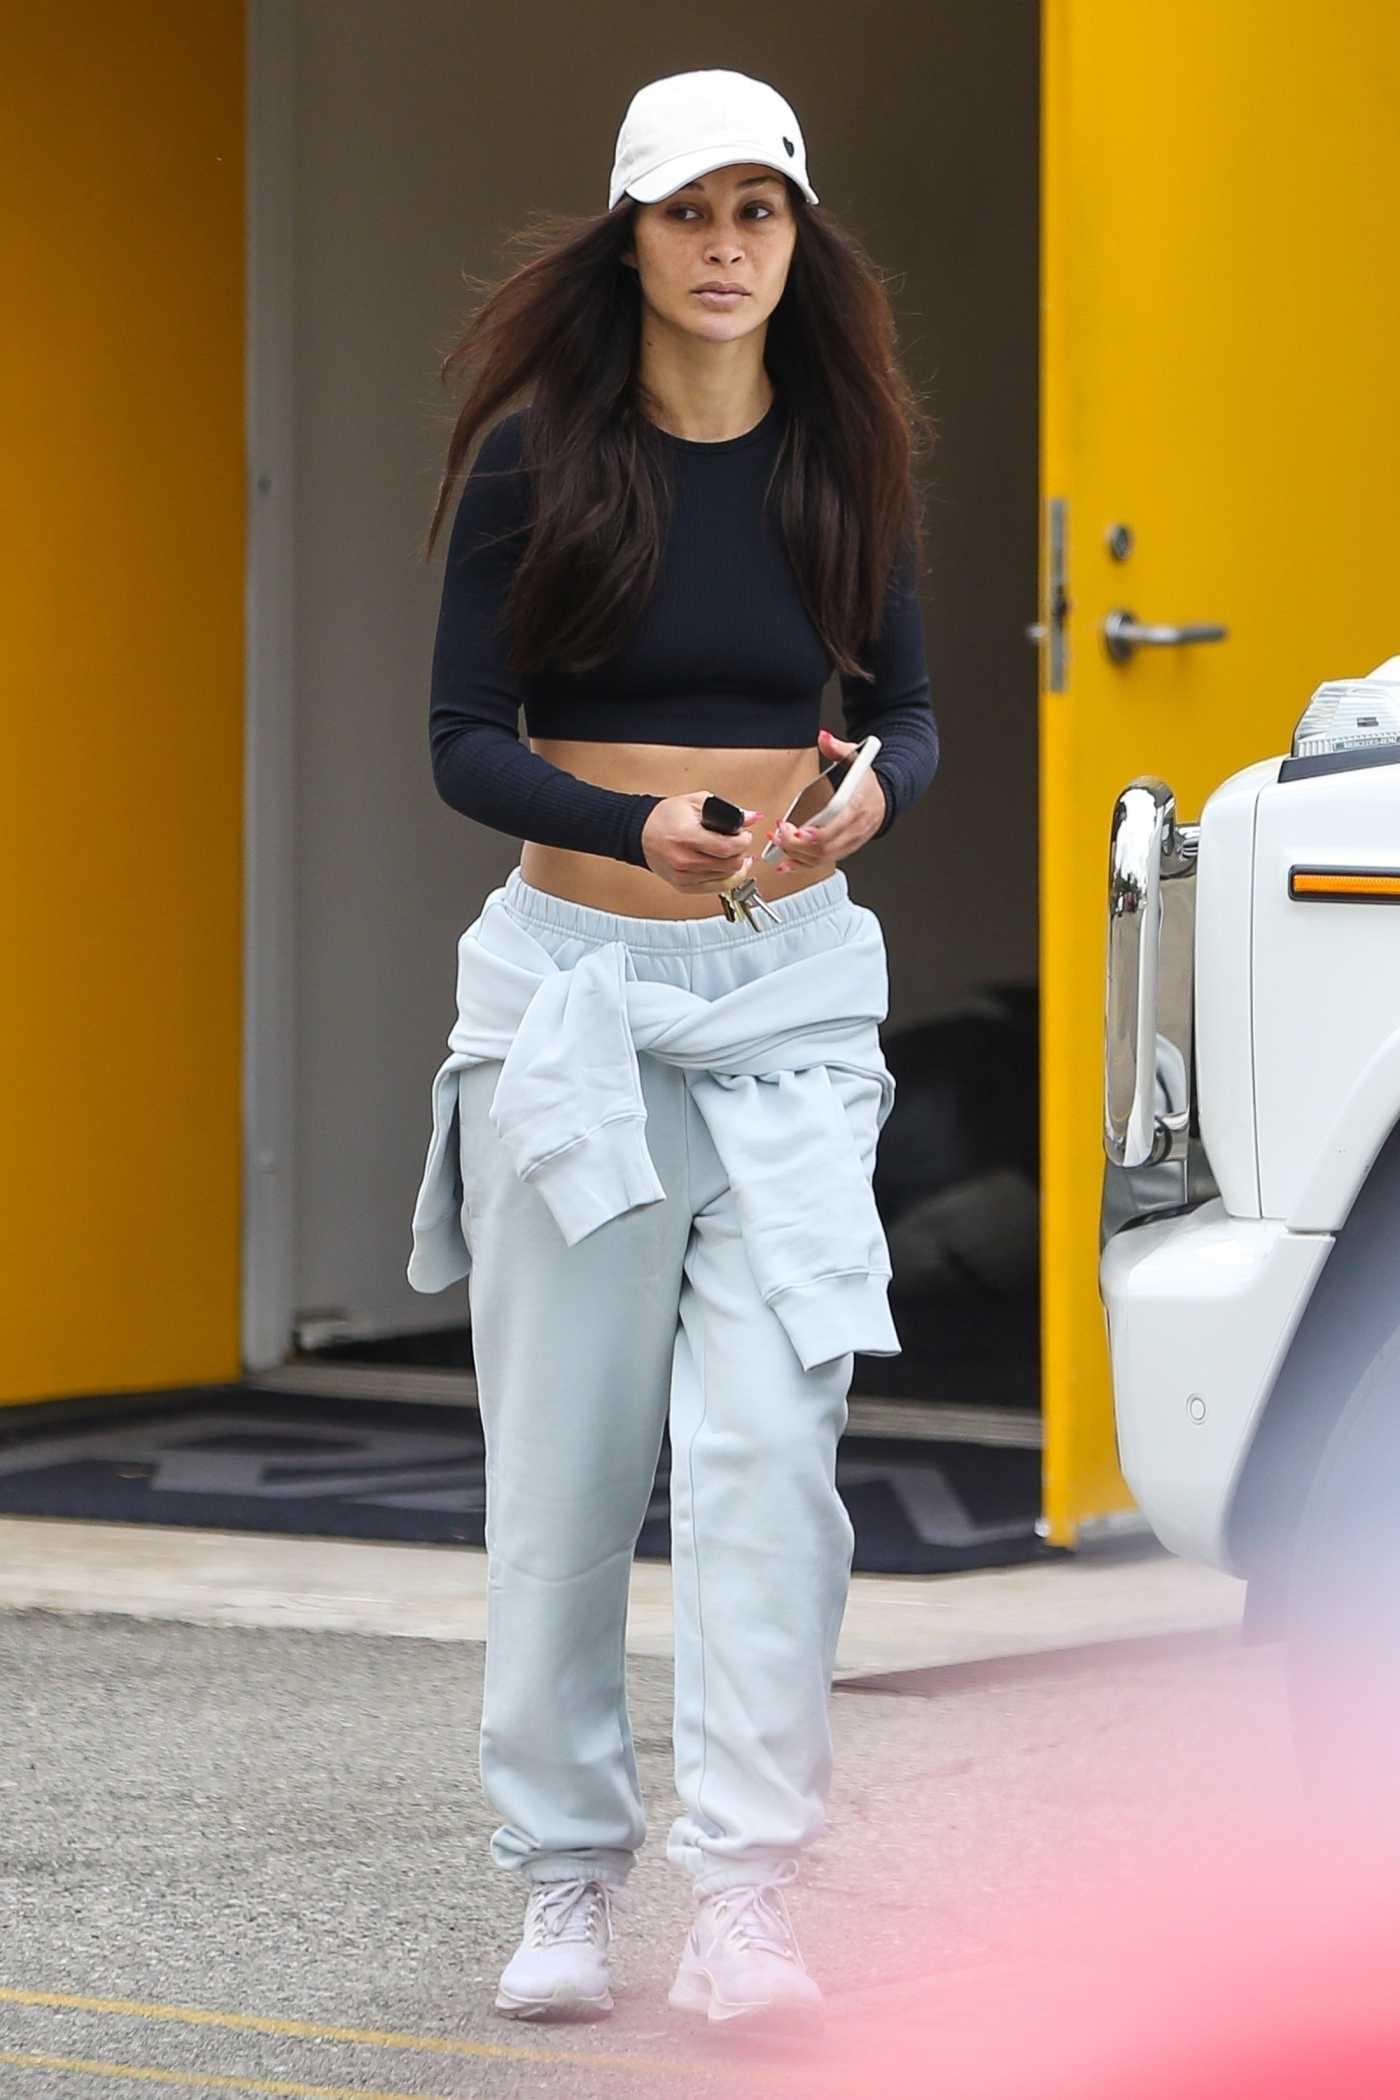 Cara Santana in a White Cap Arrives at the Gym in Los Angeles 06/07/2021